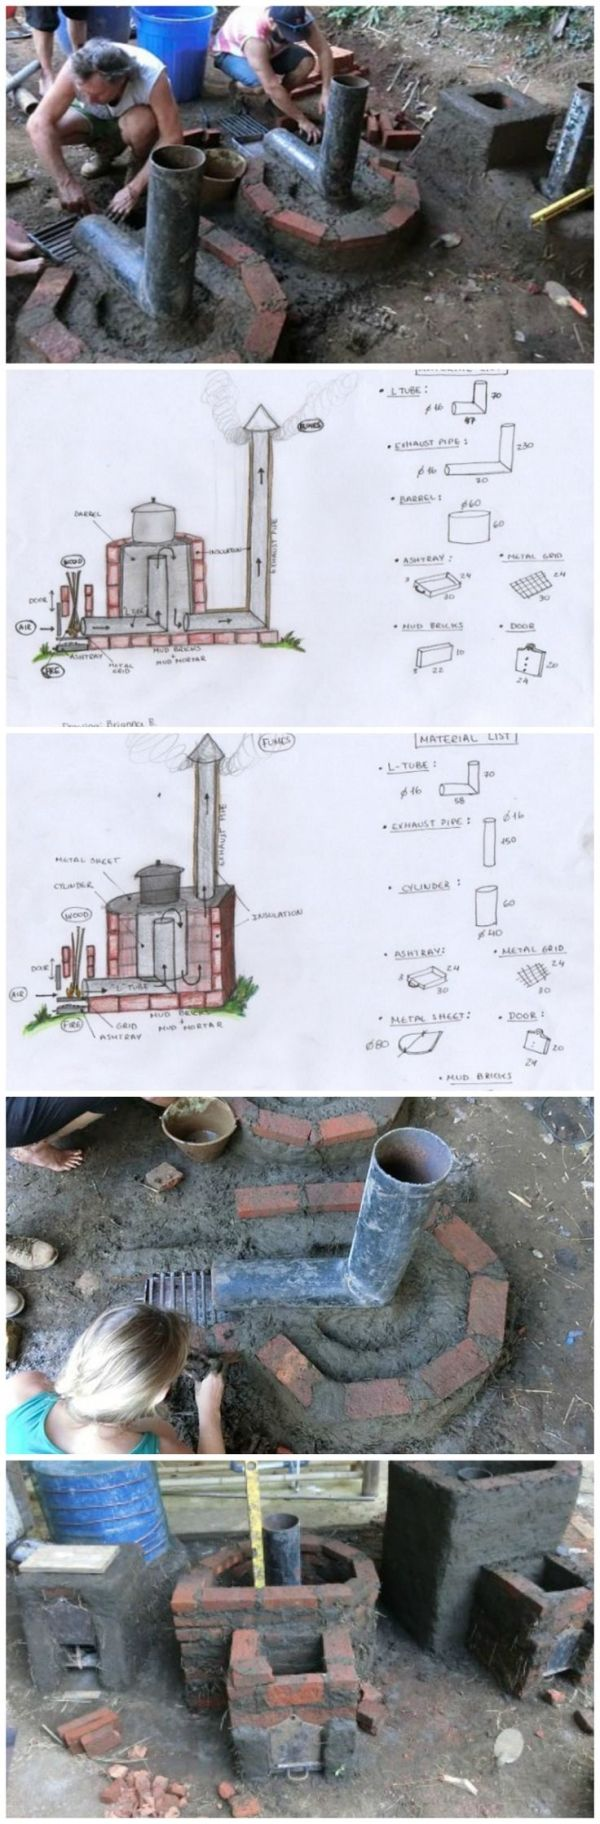 Learn How To Build A Rocket Stove For Earth Friendly Cooking... You might have not heard about earth friendly cooking, but this particular type of cooking uses less heat, removes smoking you up entirely, as well as provides more heat than your usual barbeque grill or regular outdoor stove. The following tutorial will show exactly how to build a rocket stove from scratch, advising to involve recycled materials. by norma